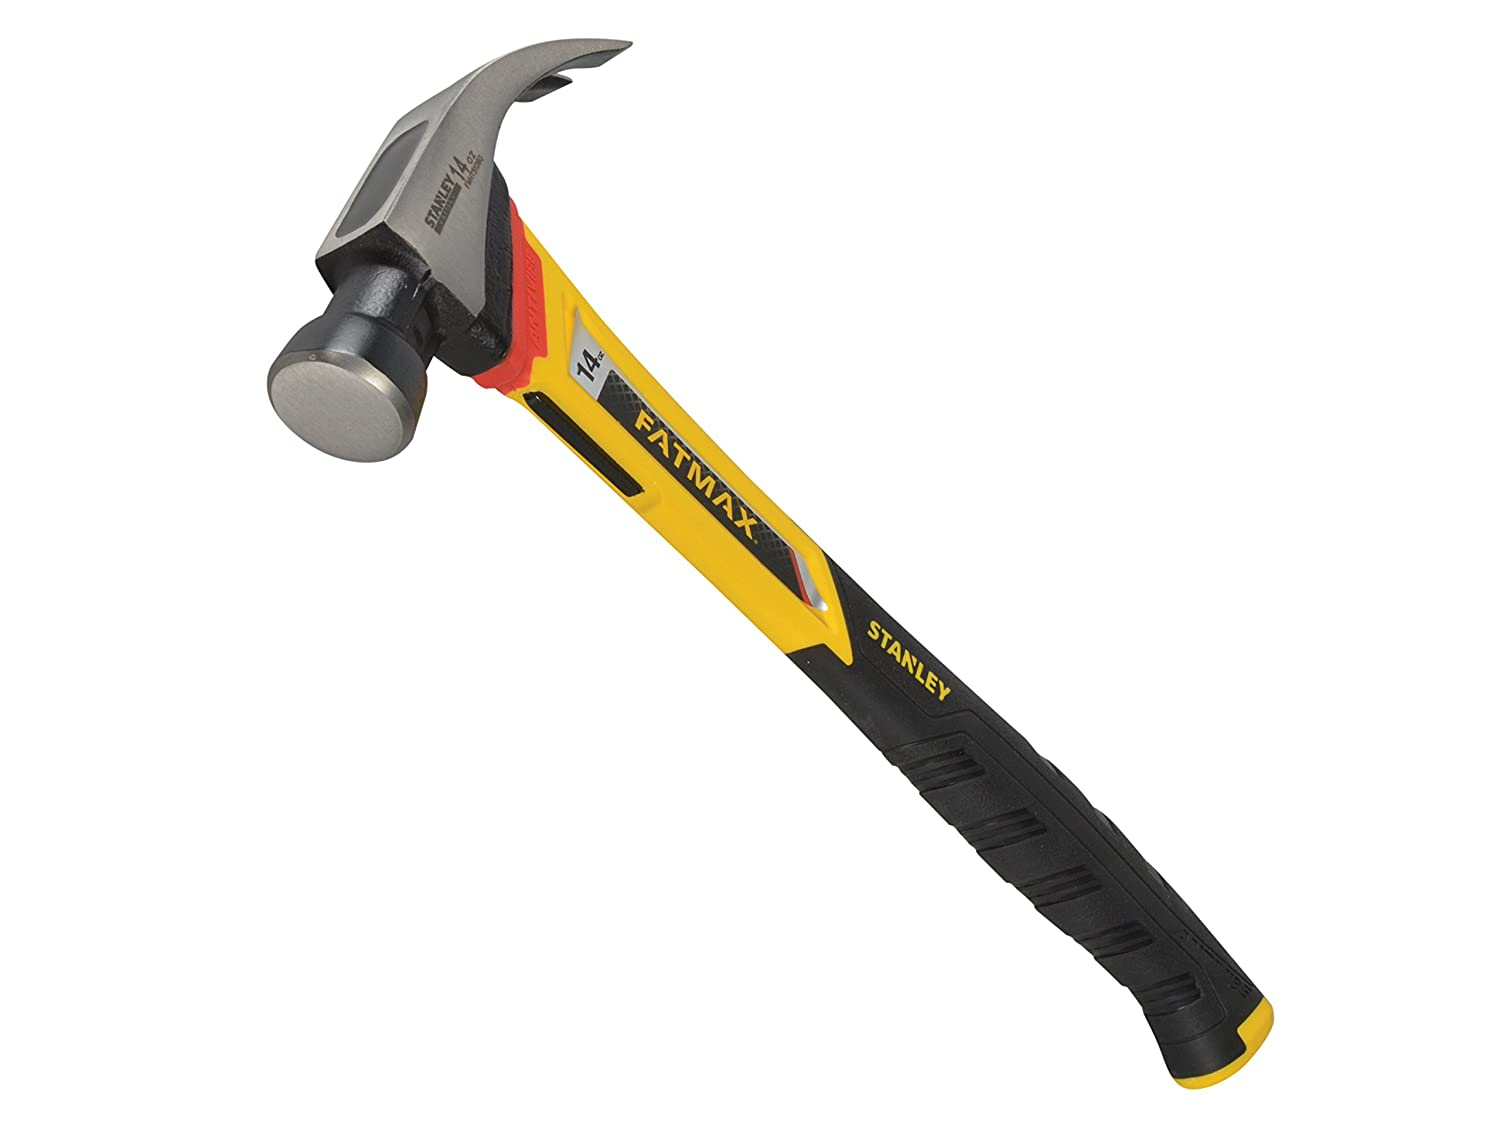 Stanley Tools FMHT1-51260 14oz Curve Claw Vibration Dampening Hammer, Black